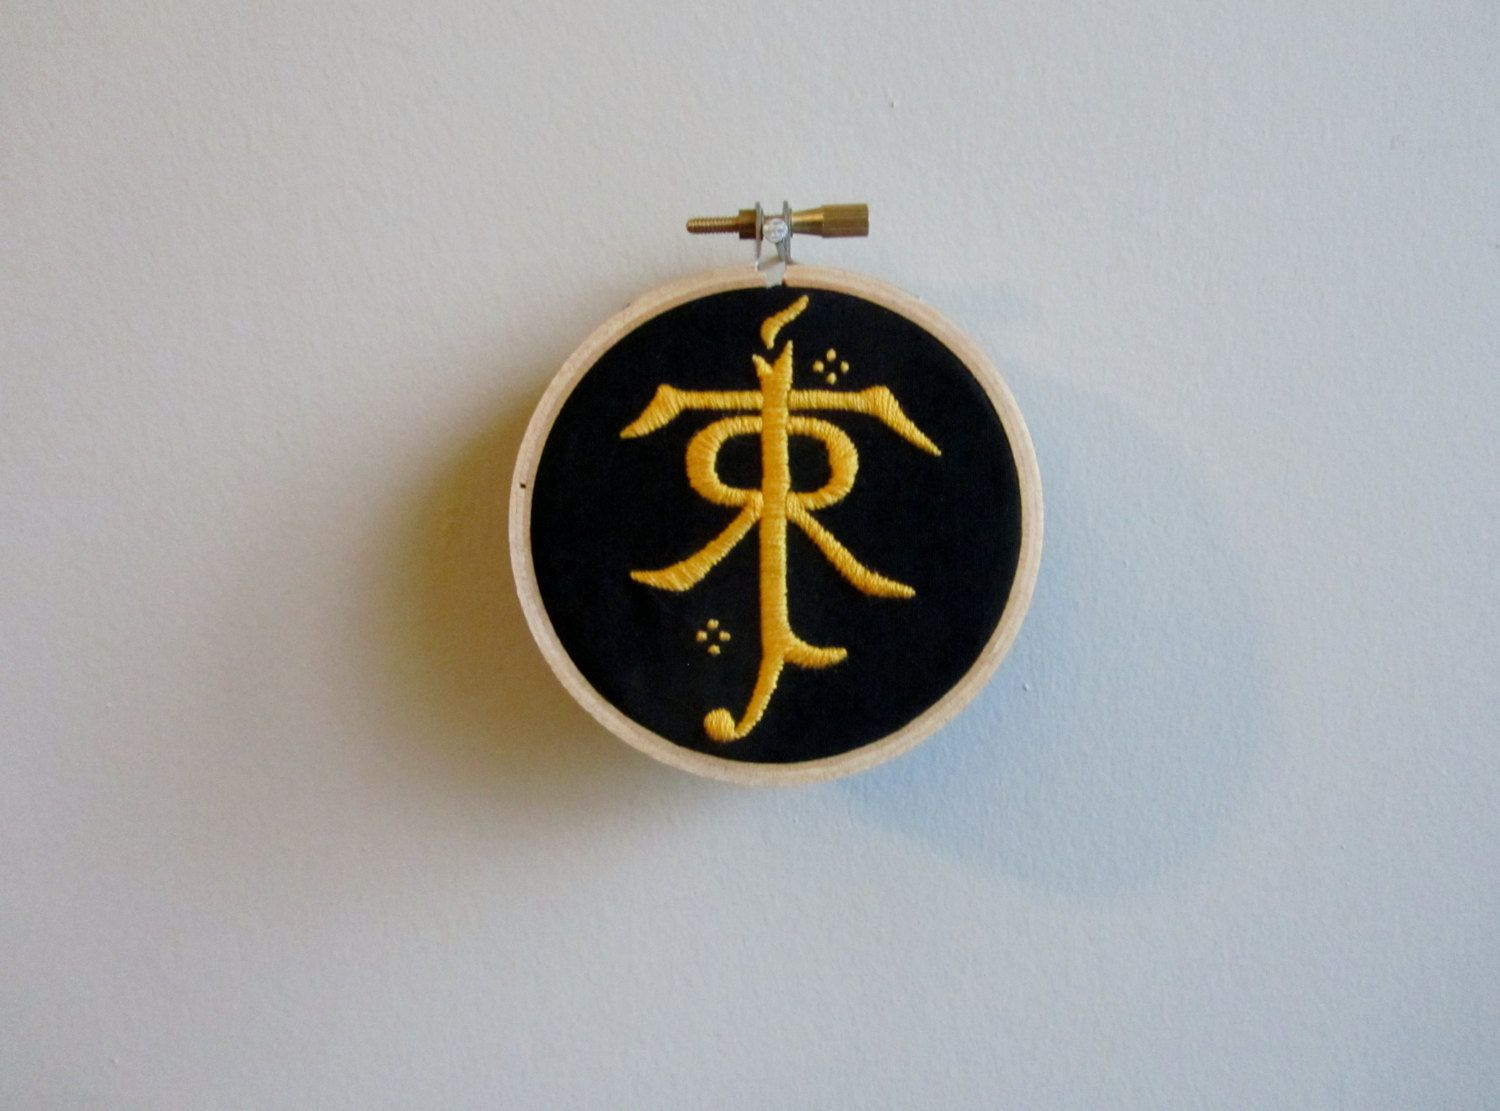 Jrr tolkien symbol lord of the rings hobbit hand stitched jrr tolkien symbol lord of the rings hobbit hand stitched embroidery hoop art biocorpaavc Choice Image